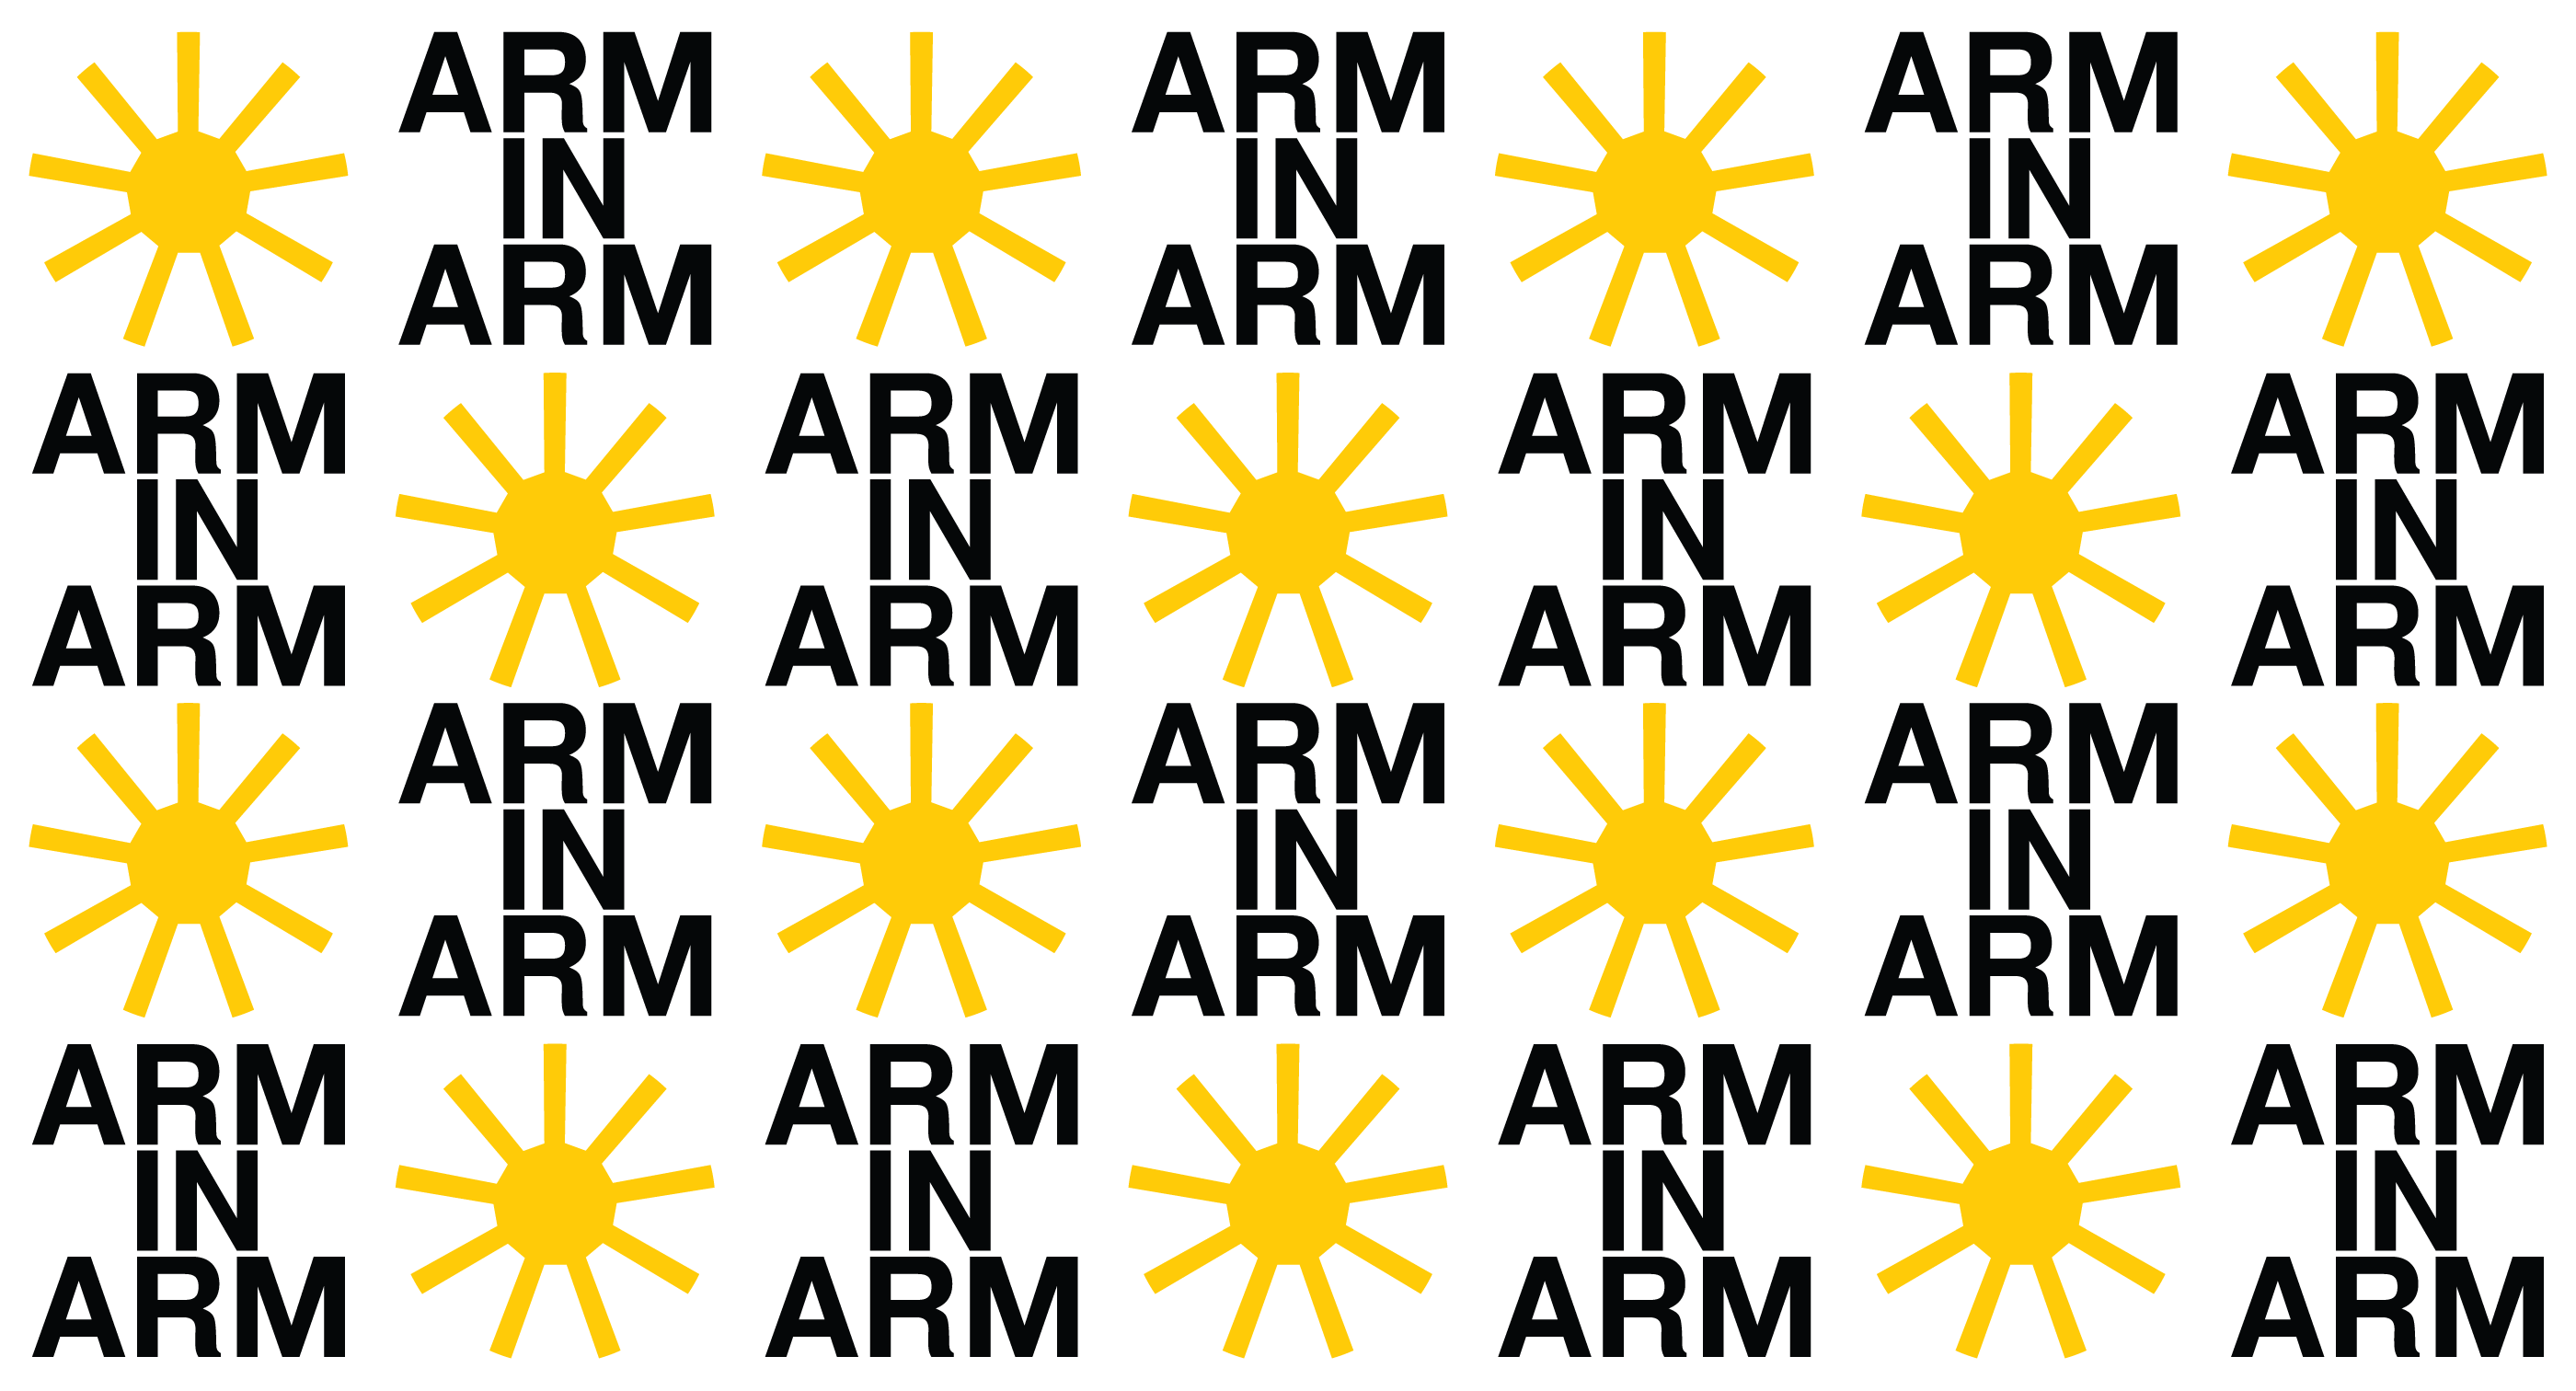 Arm-in-Arm_12